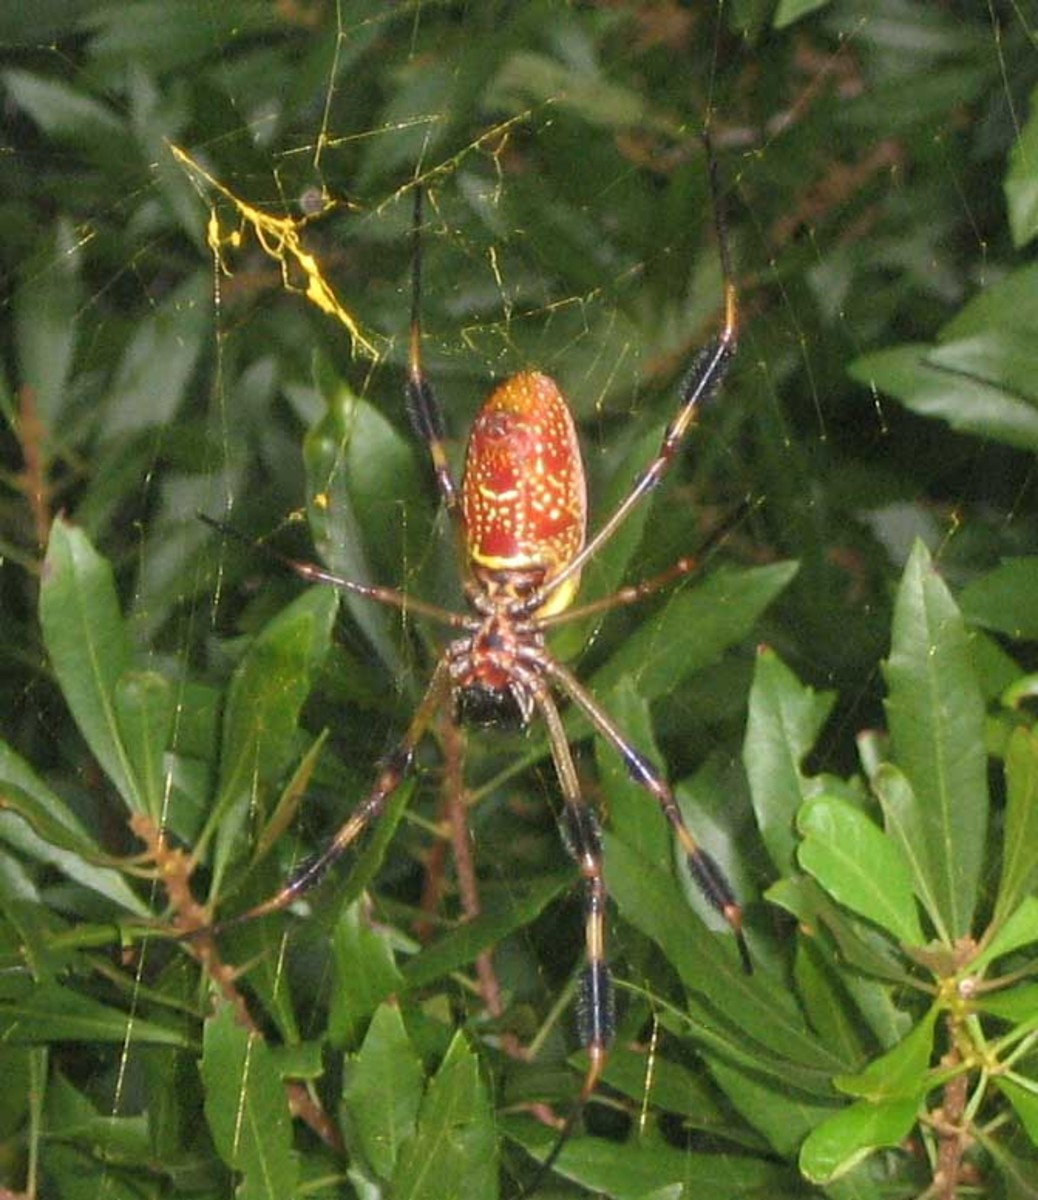 Banana spider (golden silk orb-weaver) pictured in Gainesville, Florida, USA. The spider's red body with white and yellow markings can be seen, as well as its black and yellow stripey legs.  The spider's golden-colored web can also be clearly seen.